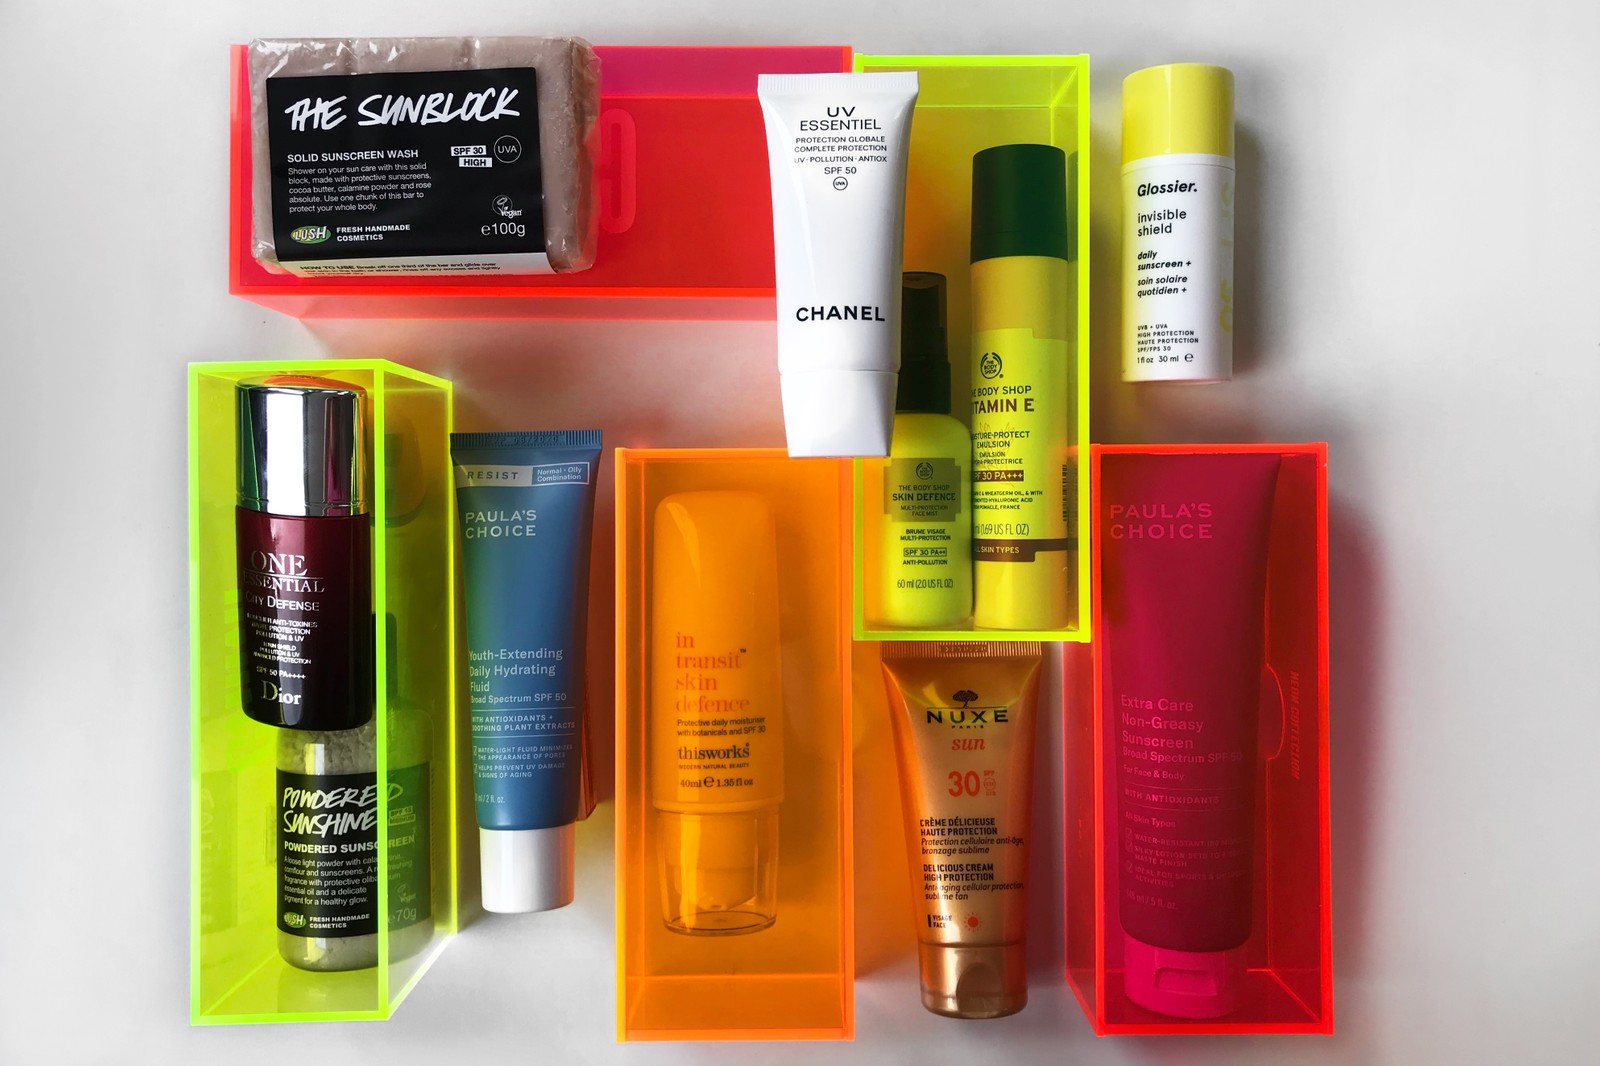 Best Sunscreen Face and Body Skincare SPF Chanel Dior Glossier Lush The Body Shop Paula's Choice